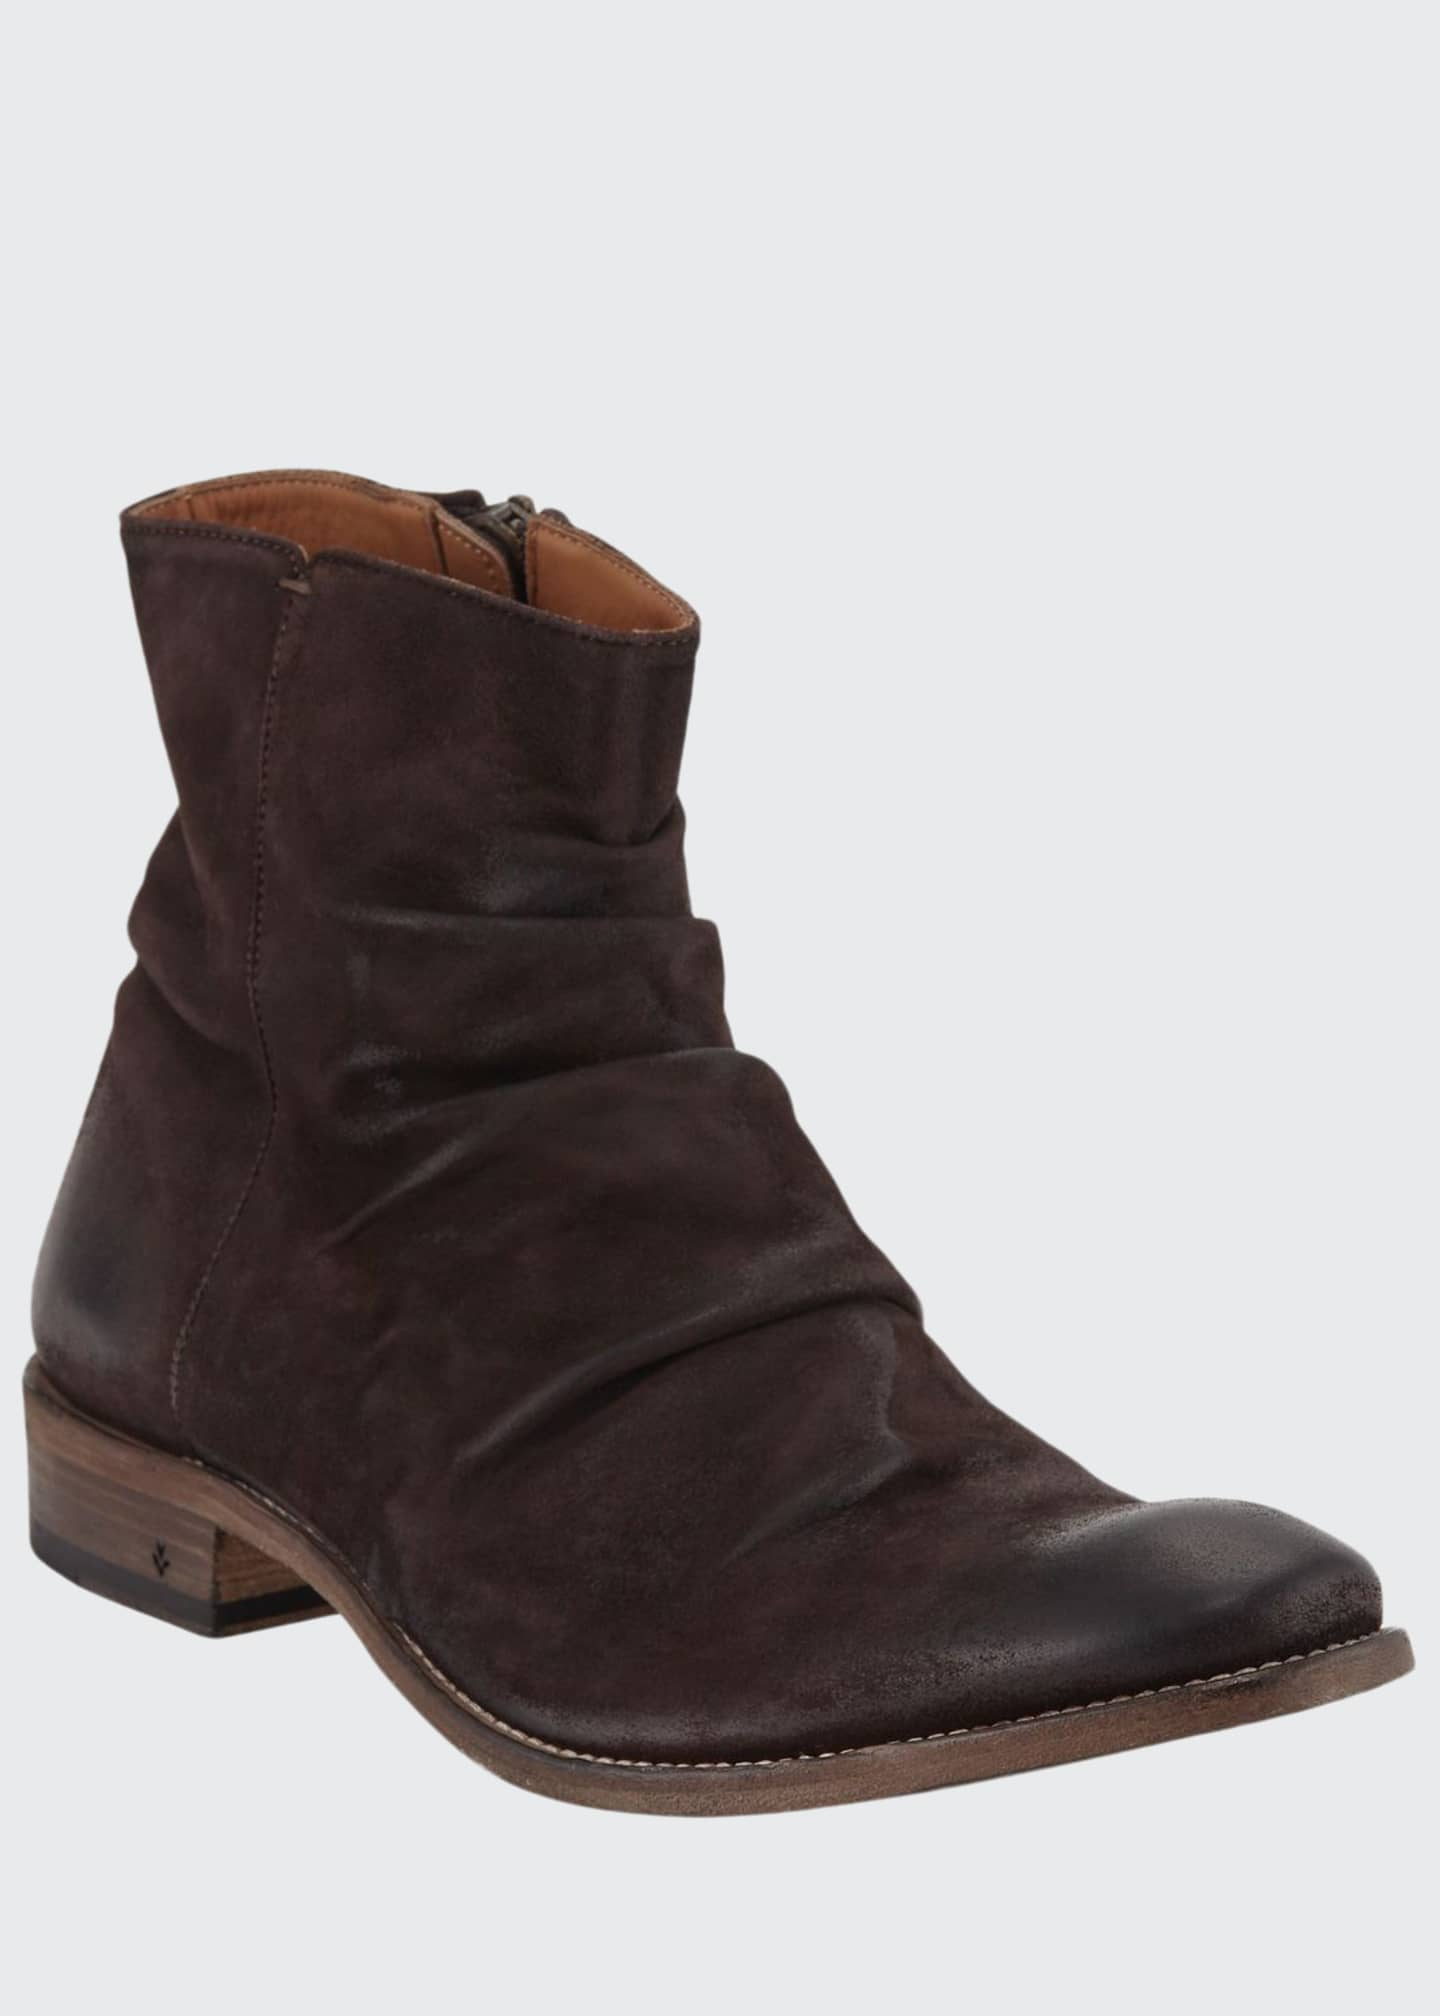 Image 1 of 3: Men's Morrison Sharpei Suede Boots